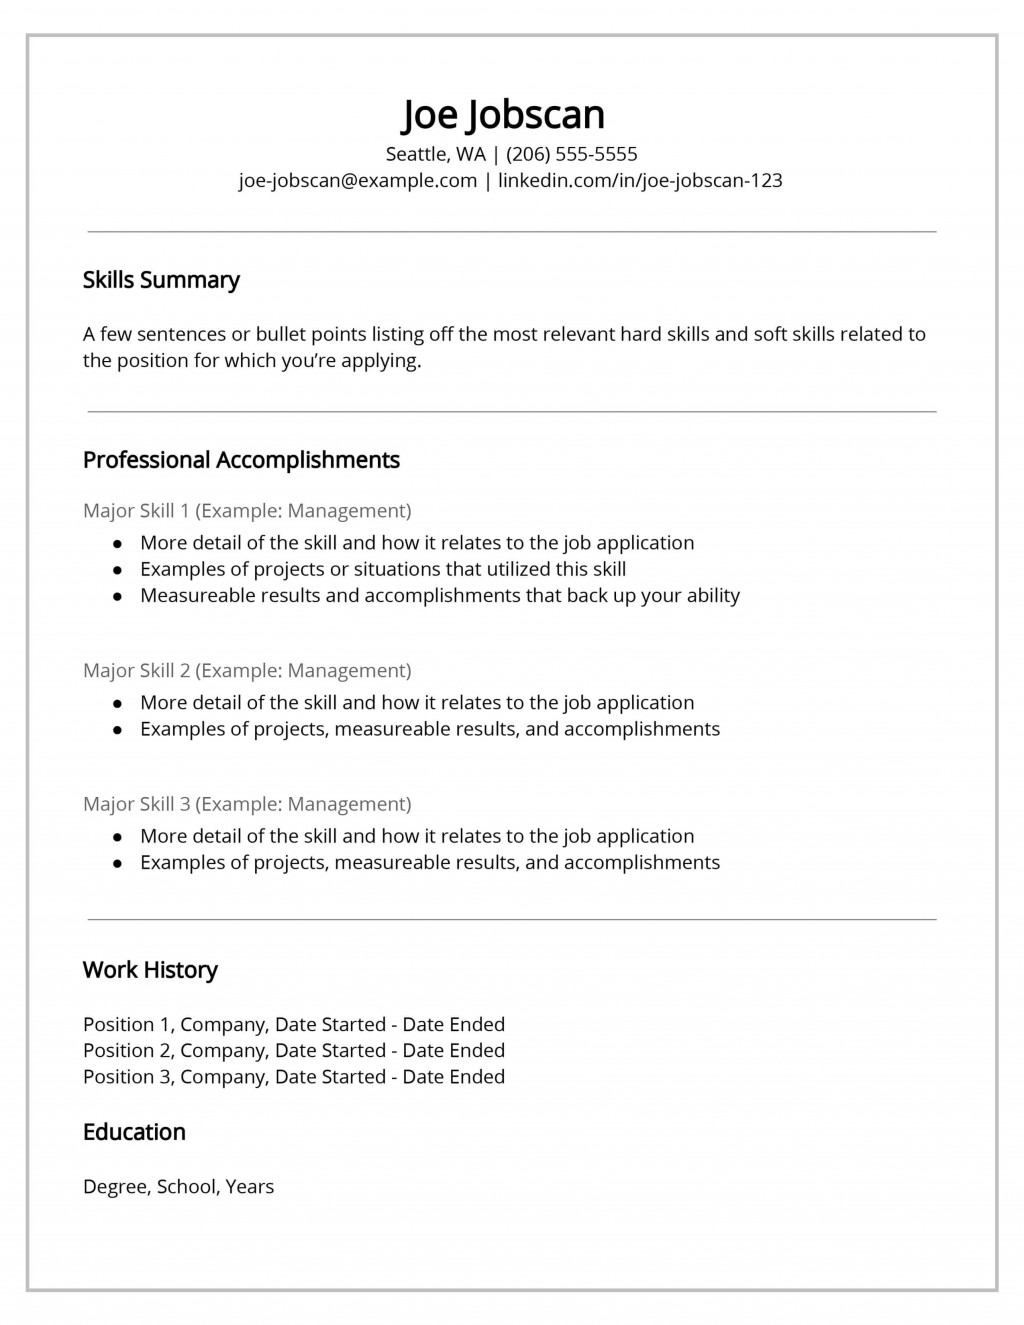 007 Incredible Functional Resume Template Free Example Large